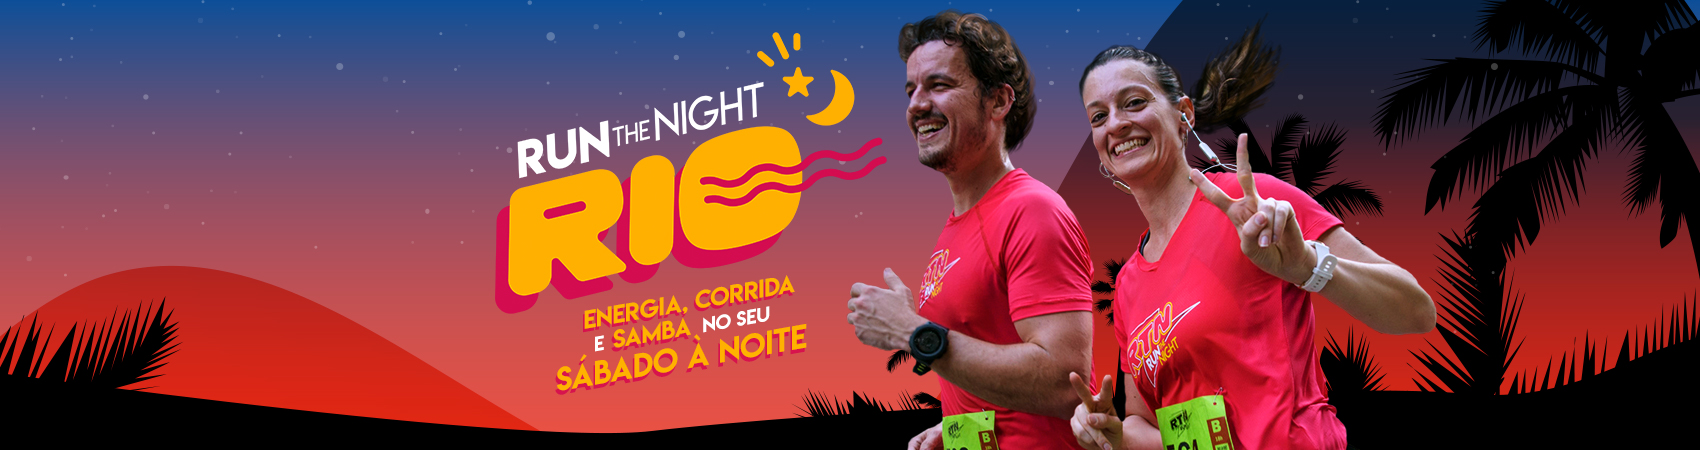 RUN THE NIGHT RIO 2019